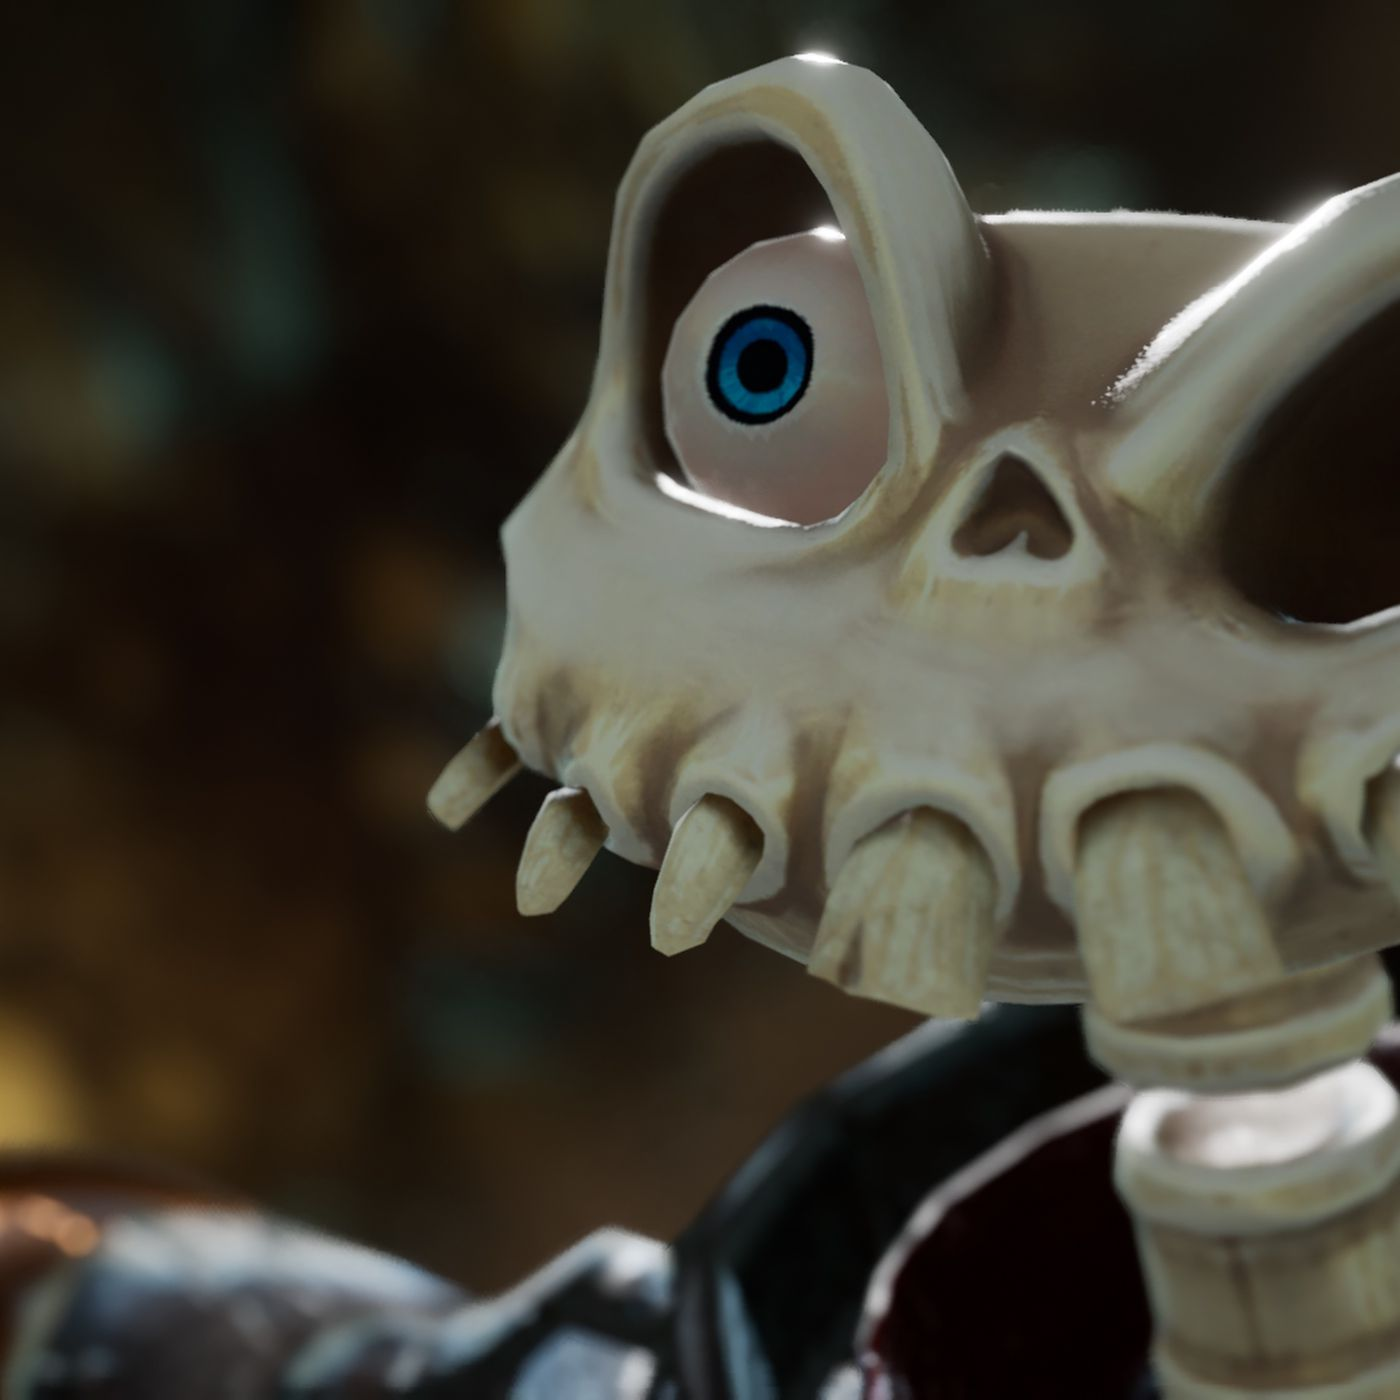 MediEvil PS4 remake gets an October release date - Polygon